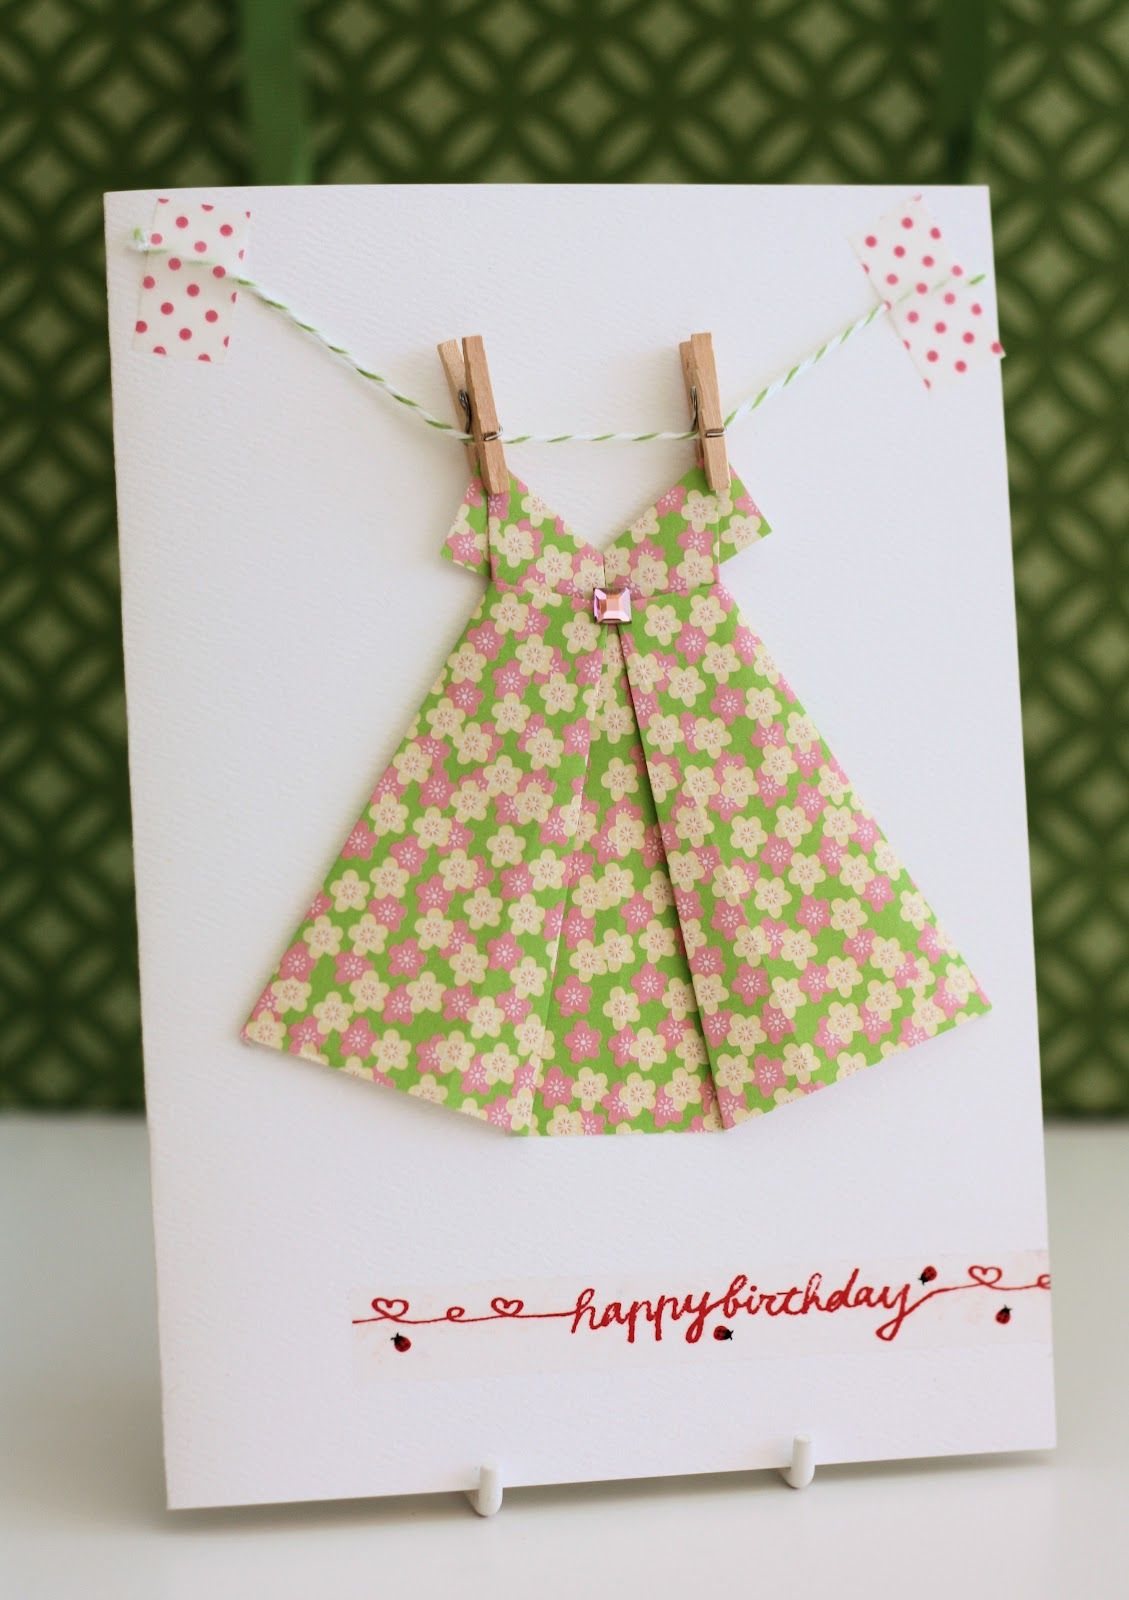 Origami Dress Card video on making paper dressyoutube – How to Make Origami Birthday Cards